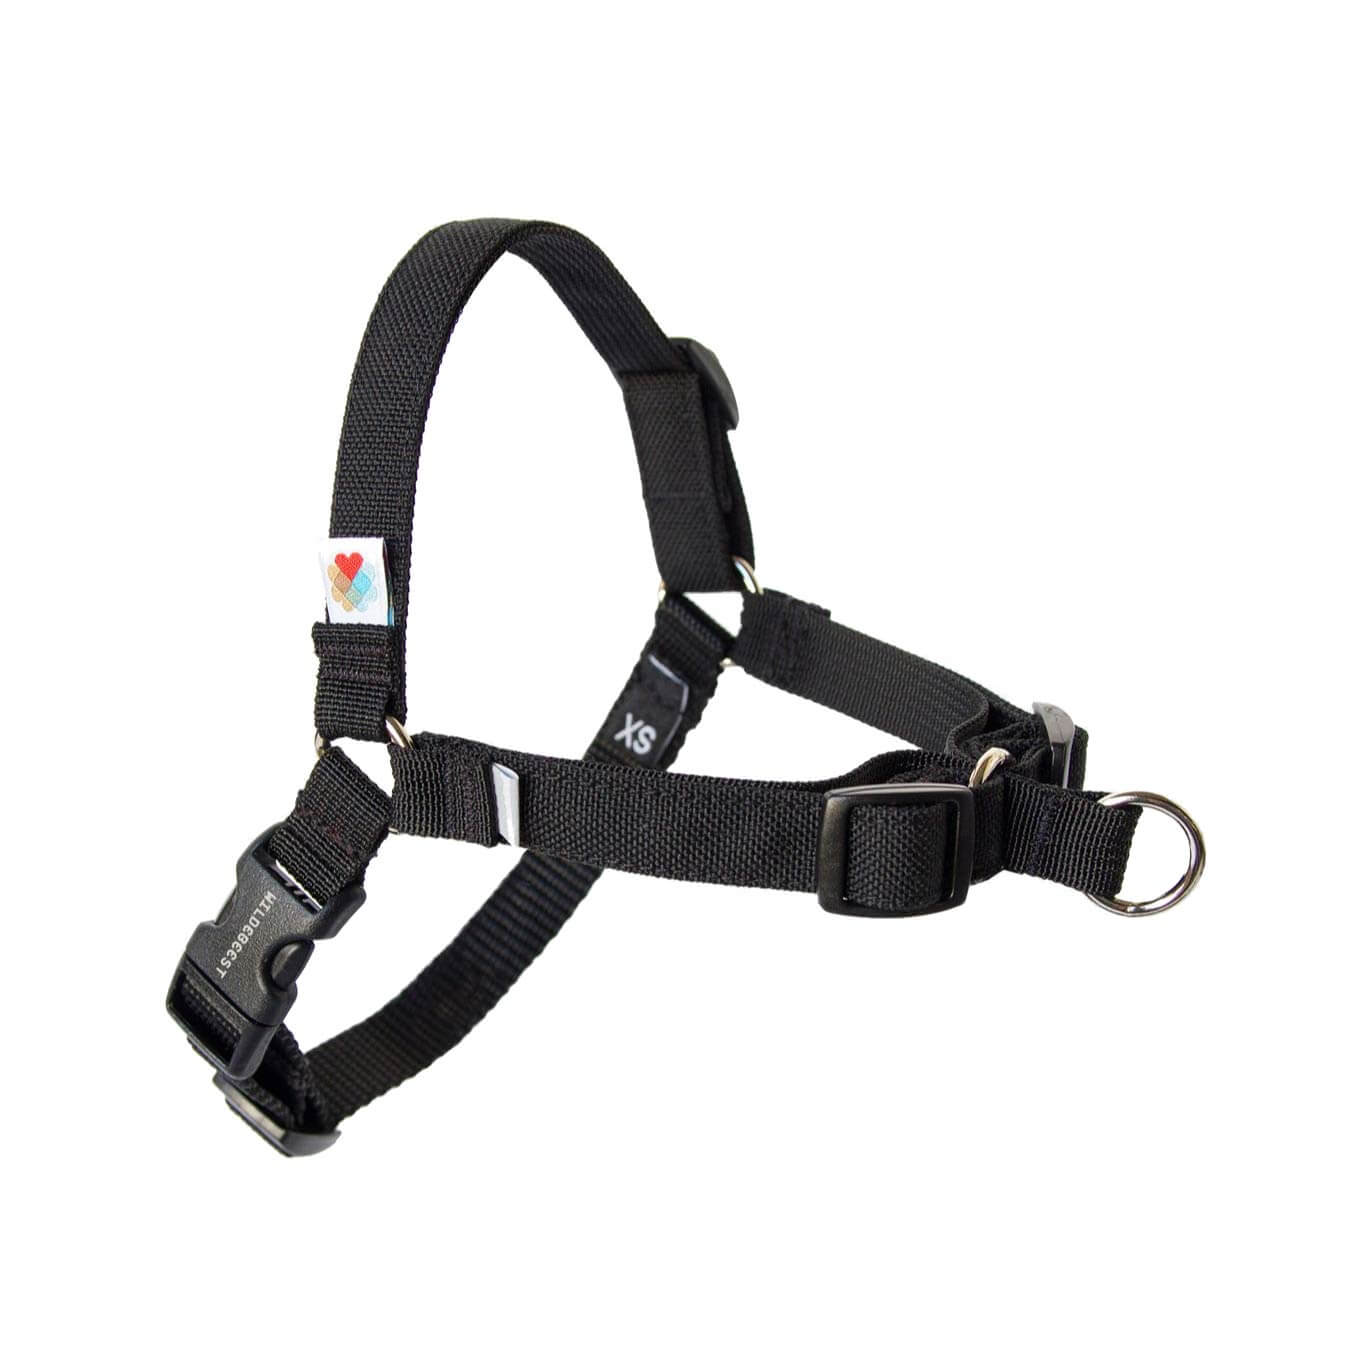 Wildebeest Linden No Pull Harness | Black - Dogs, Harnesses, Walking, Wildebeest - Shop Vanillapup - Online Pet Shop